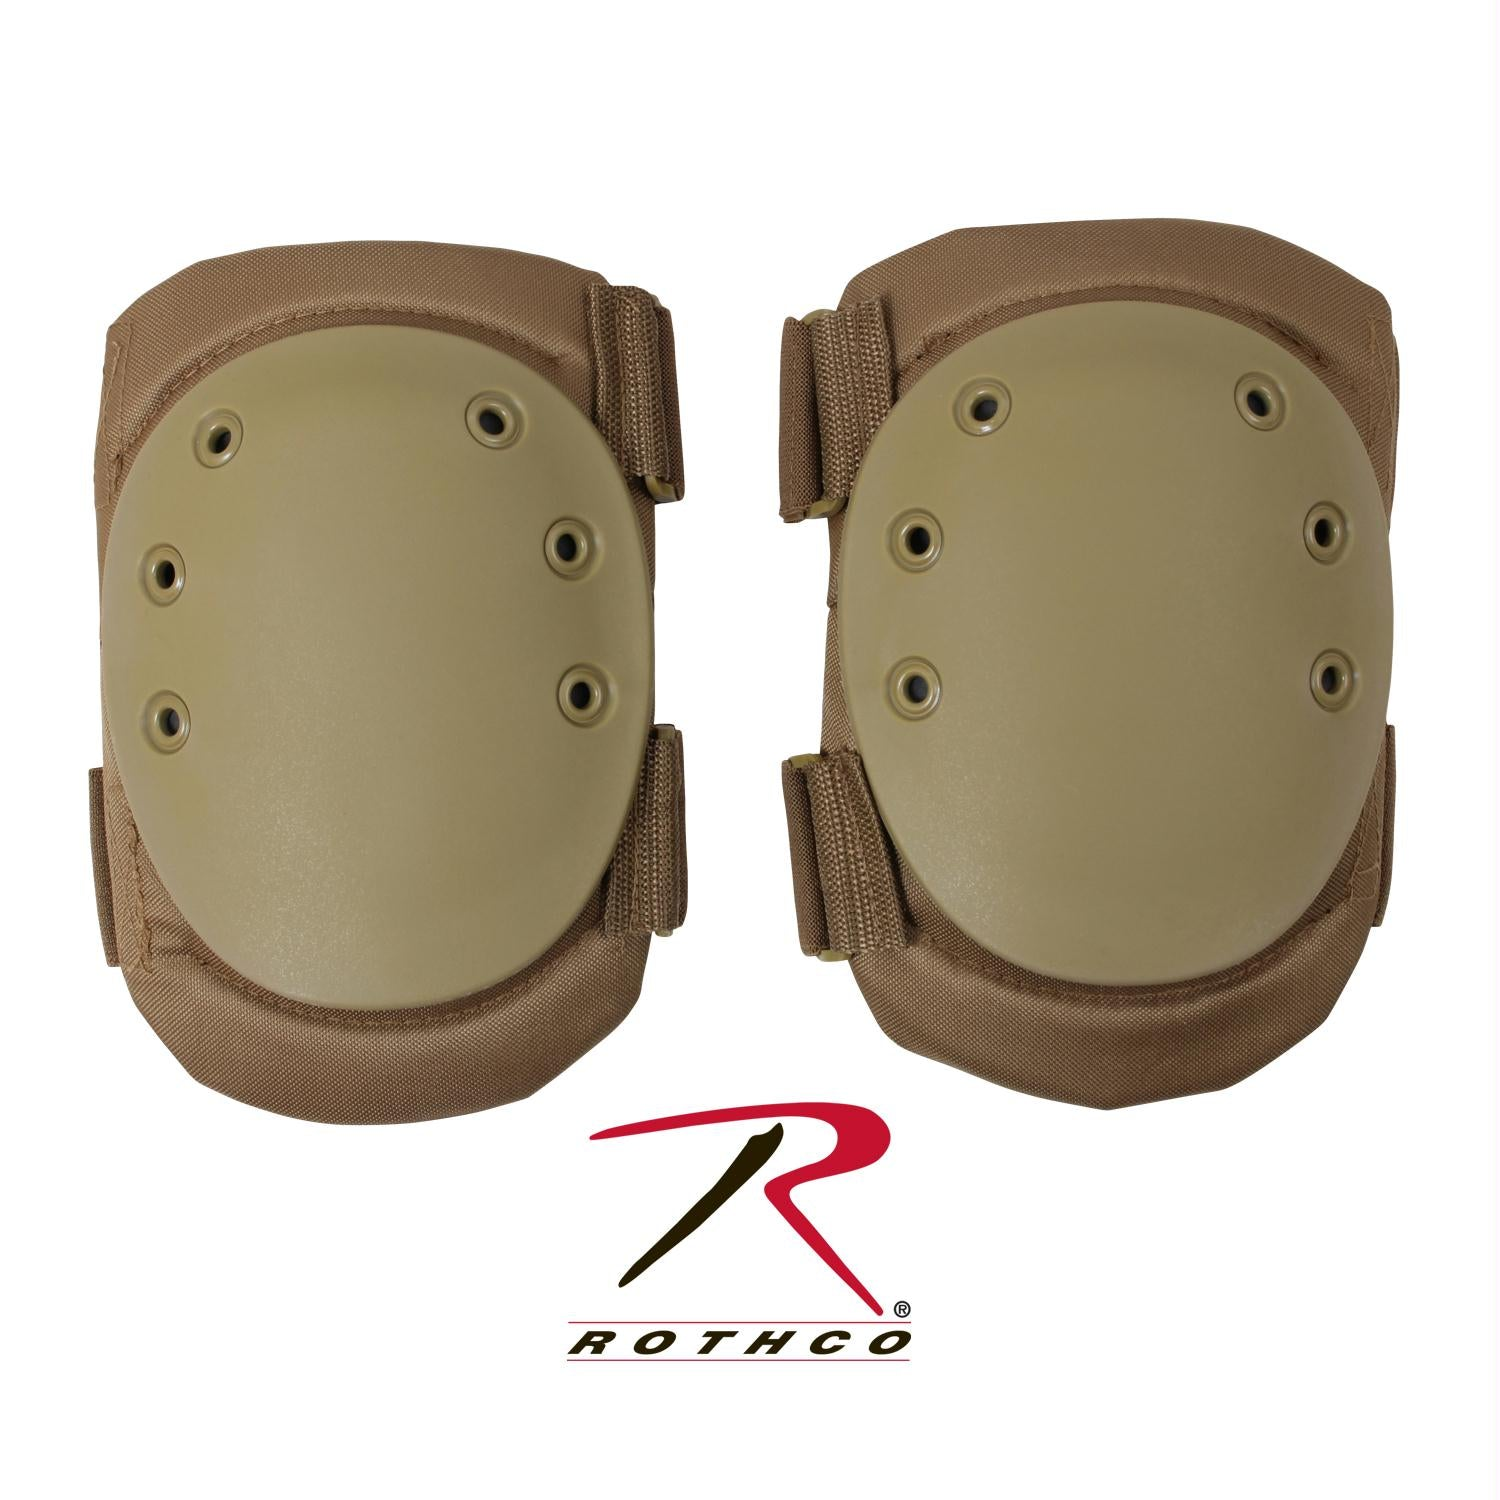 Rothco Tactical Protective Gear Knee Pads - Coyote Brown